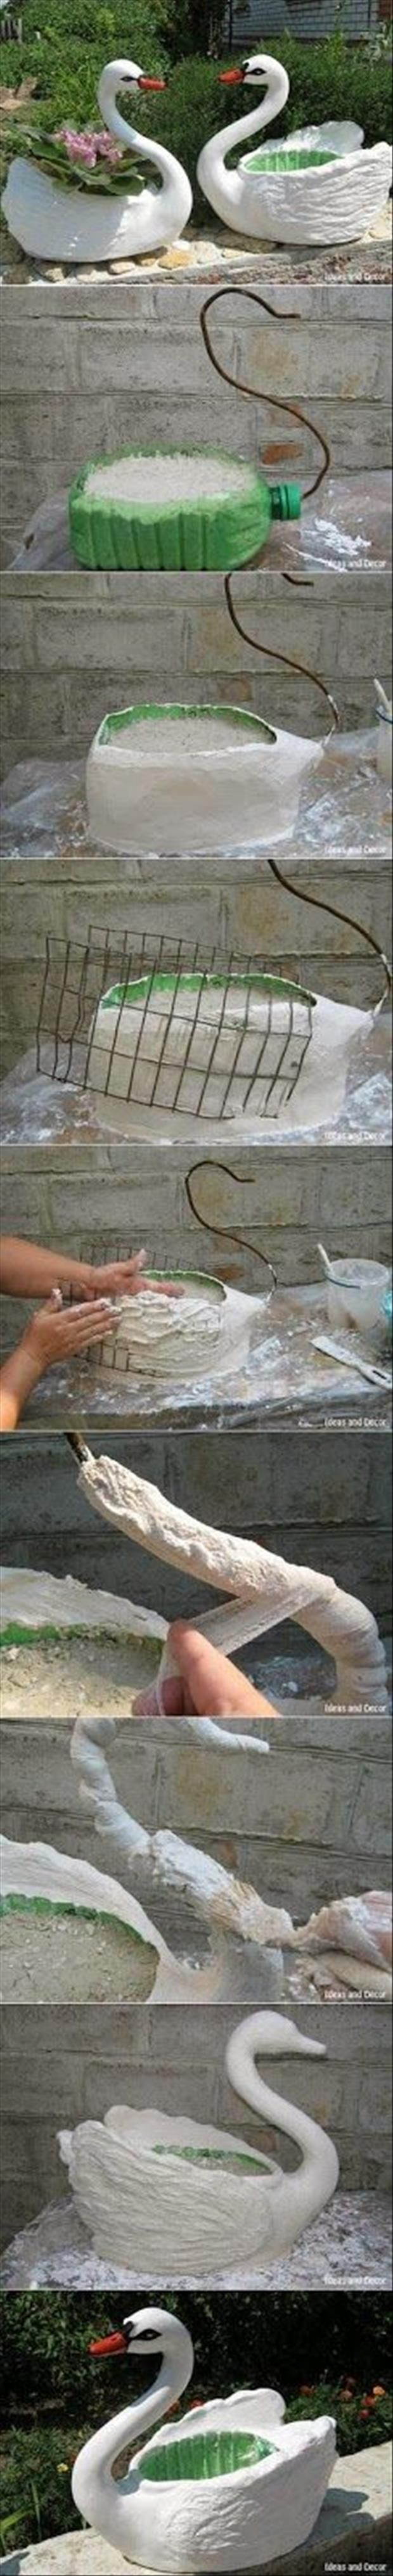 Dump A Day Simple Do It Yourself Craft Ideas - 50 Pics